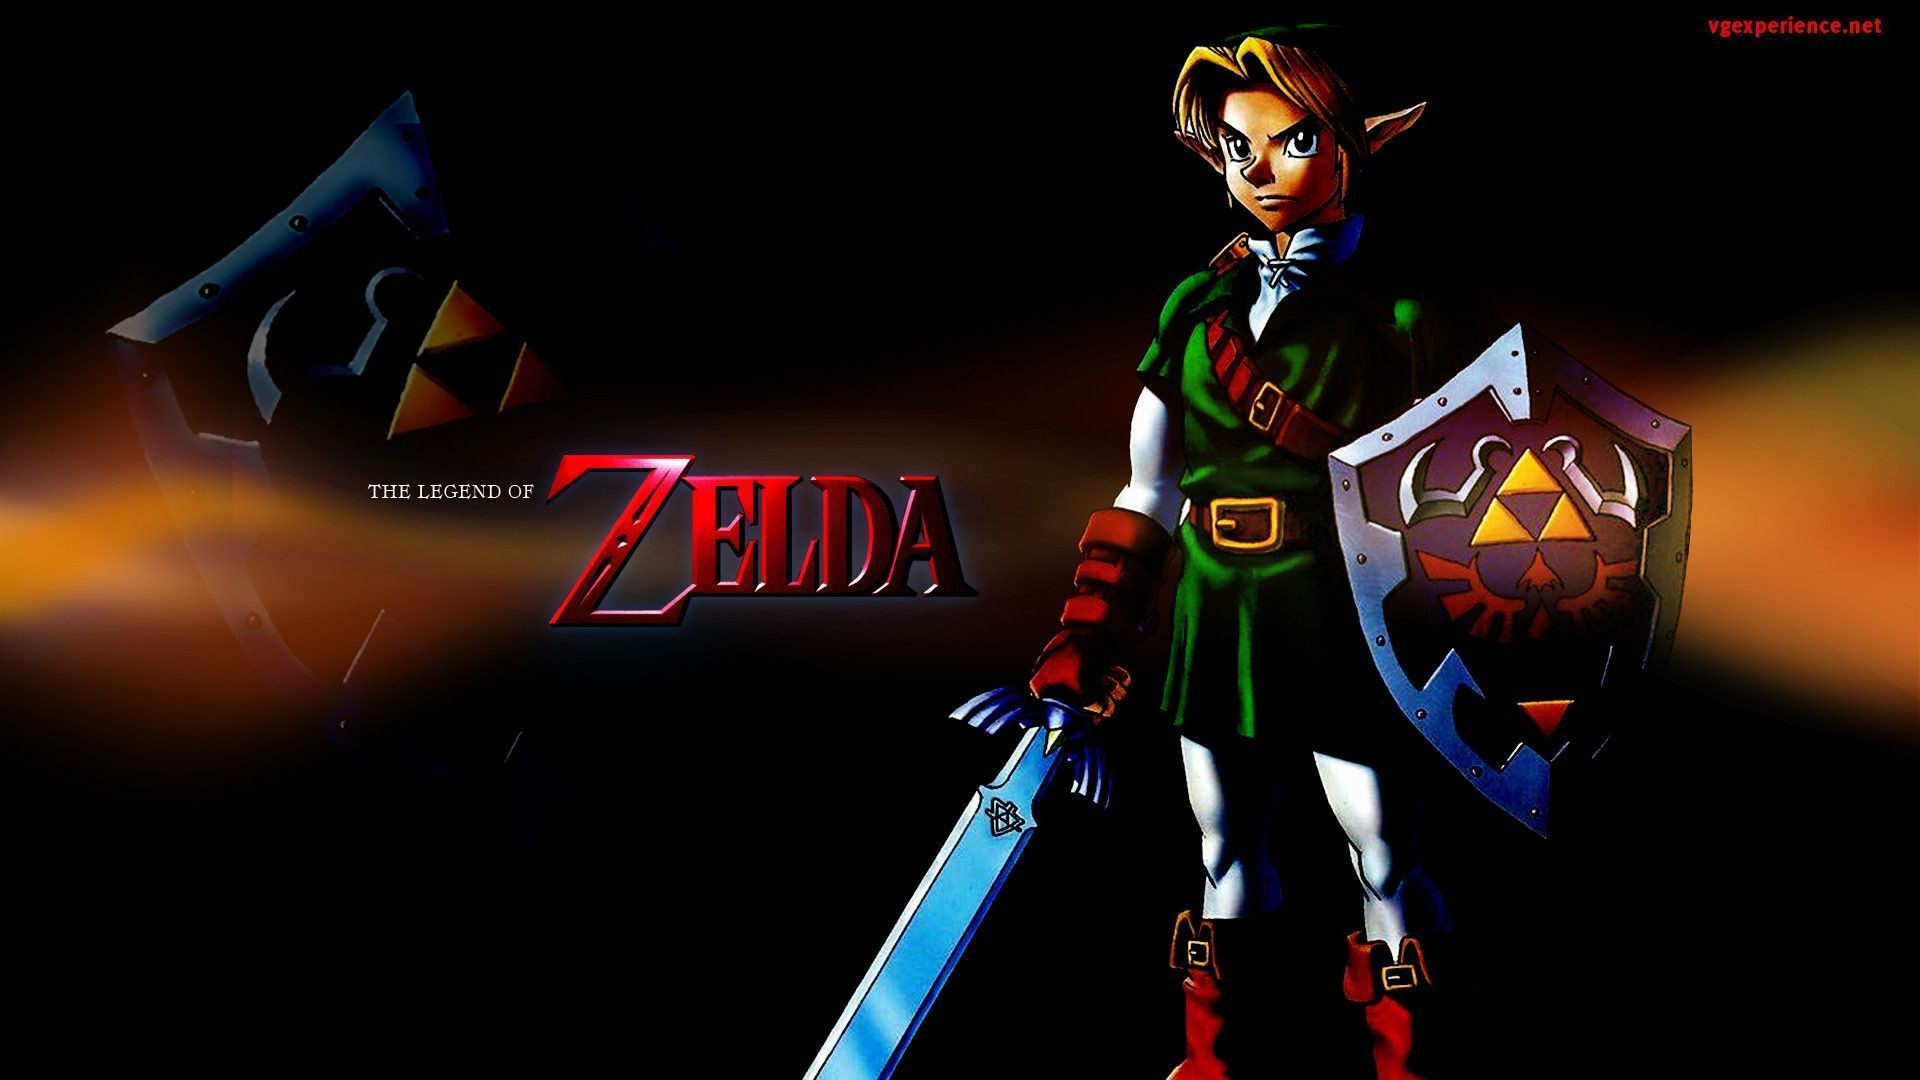 Res: 1920x1080, The Legend Of Zelda Ocarina Of Time Wallpapers Group